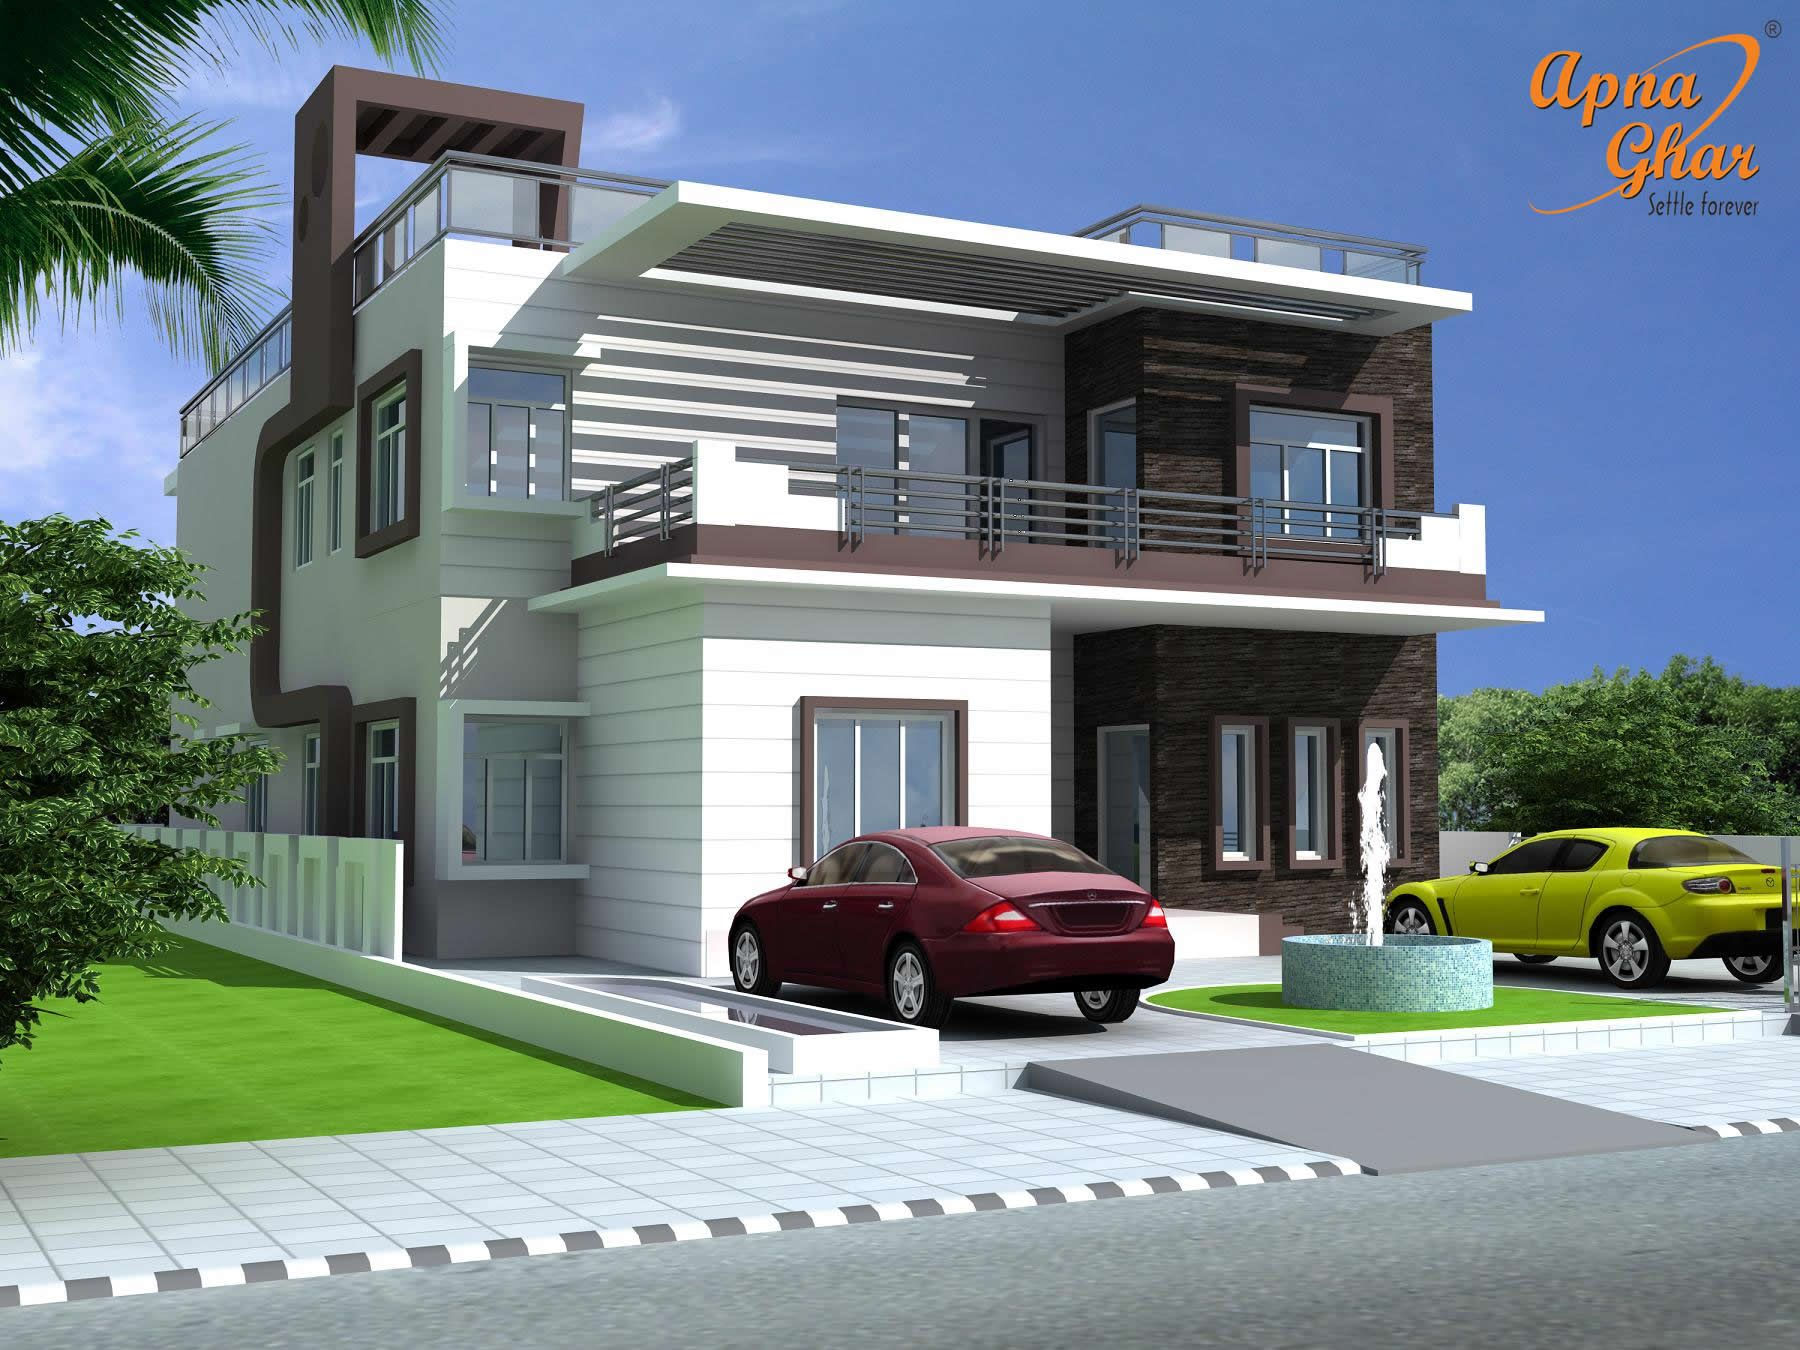 6 bedrooms duplex house design in 390m2 13m x 30m click for Duplex house interior designs photos